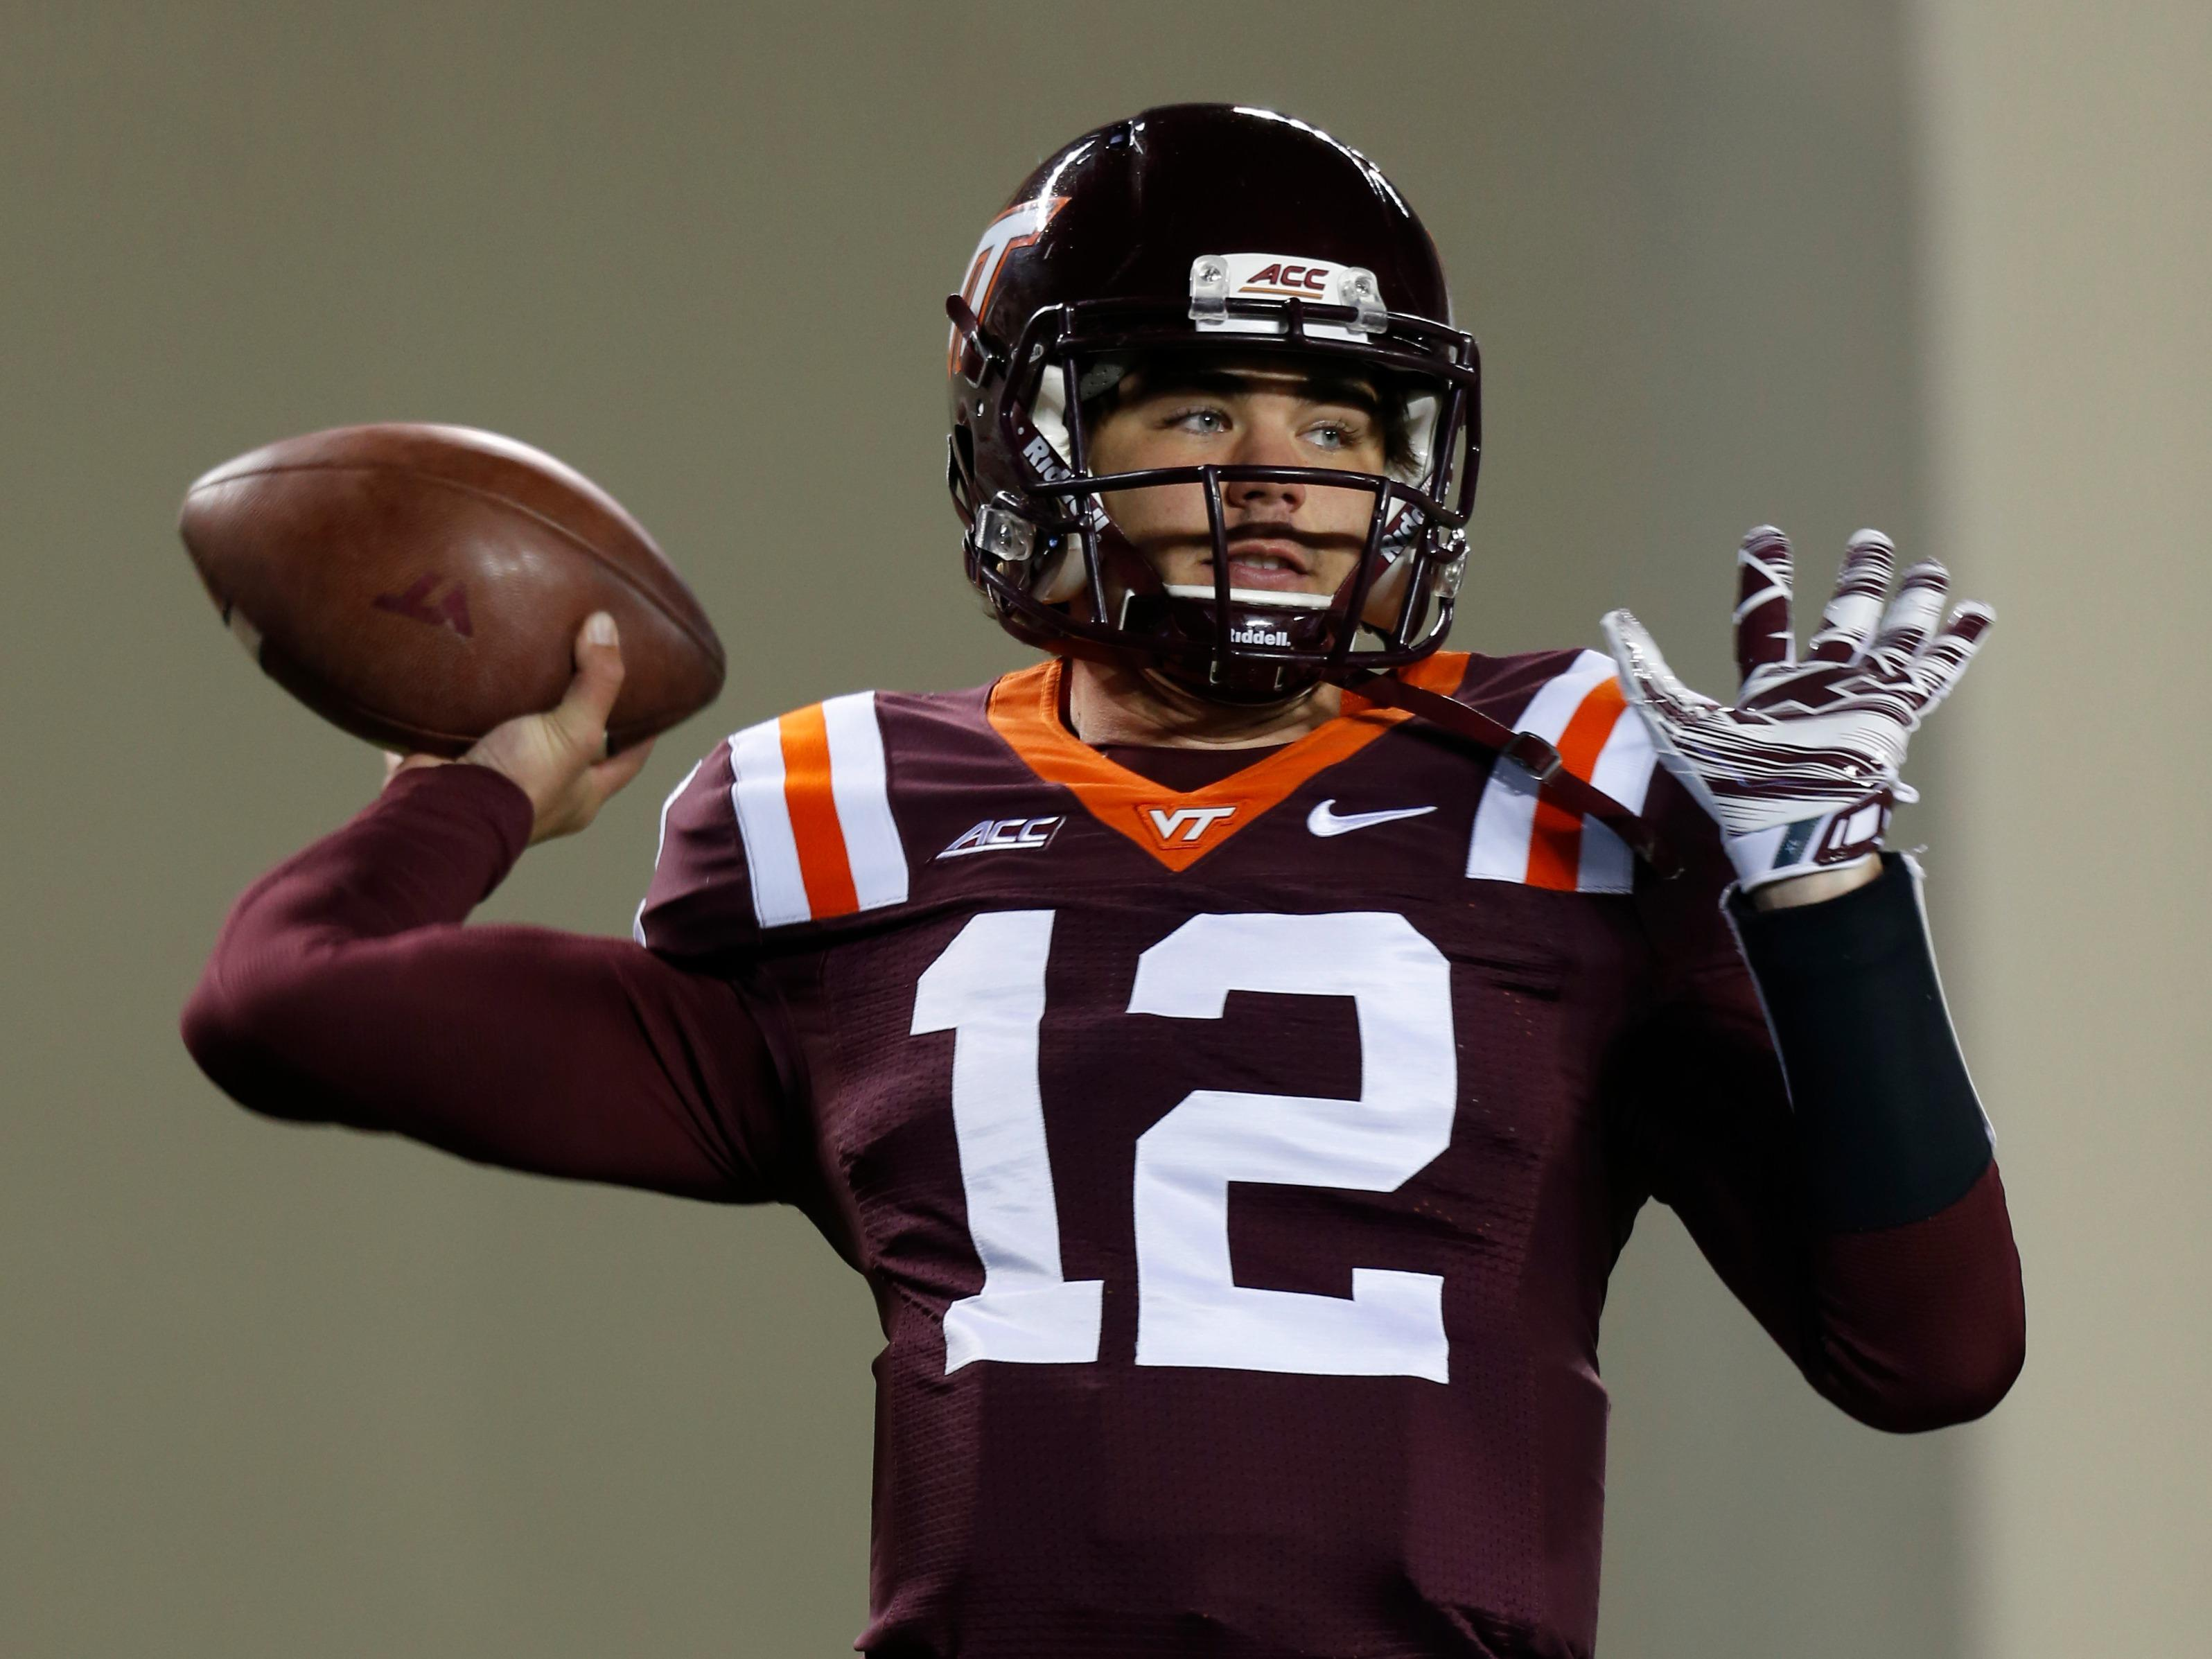 Here's the outrageous list of things Virginia Tech apparently planned to fine football players for